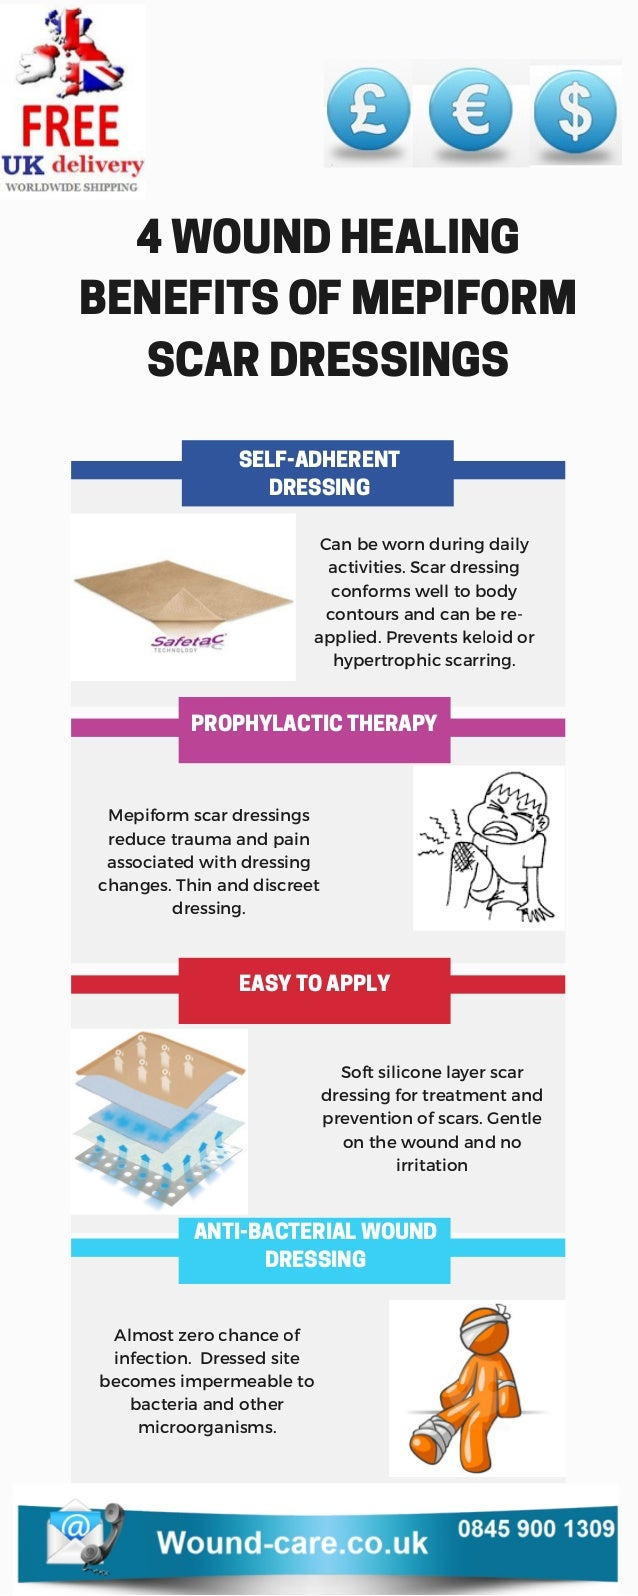 4 wound healing benefits of mepiform scar dressings